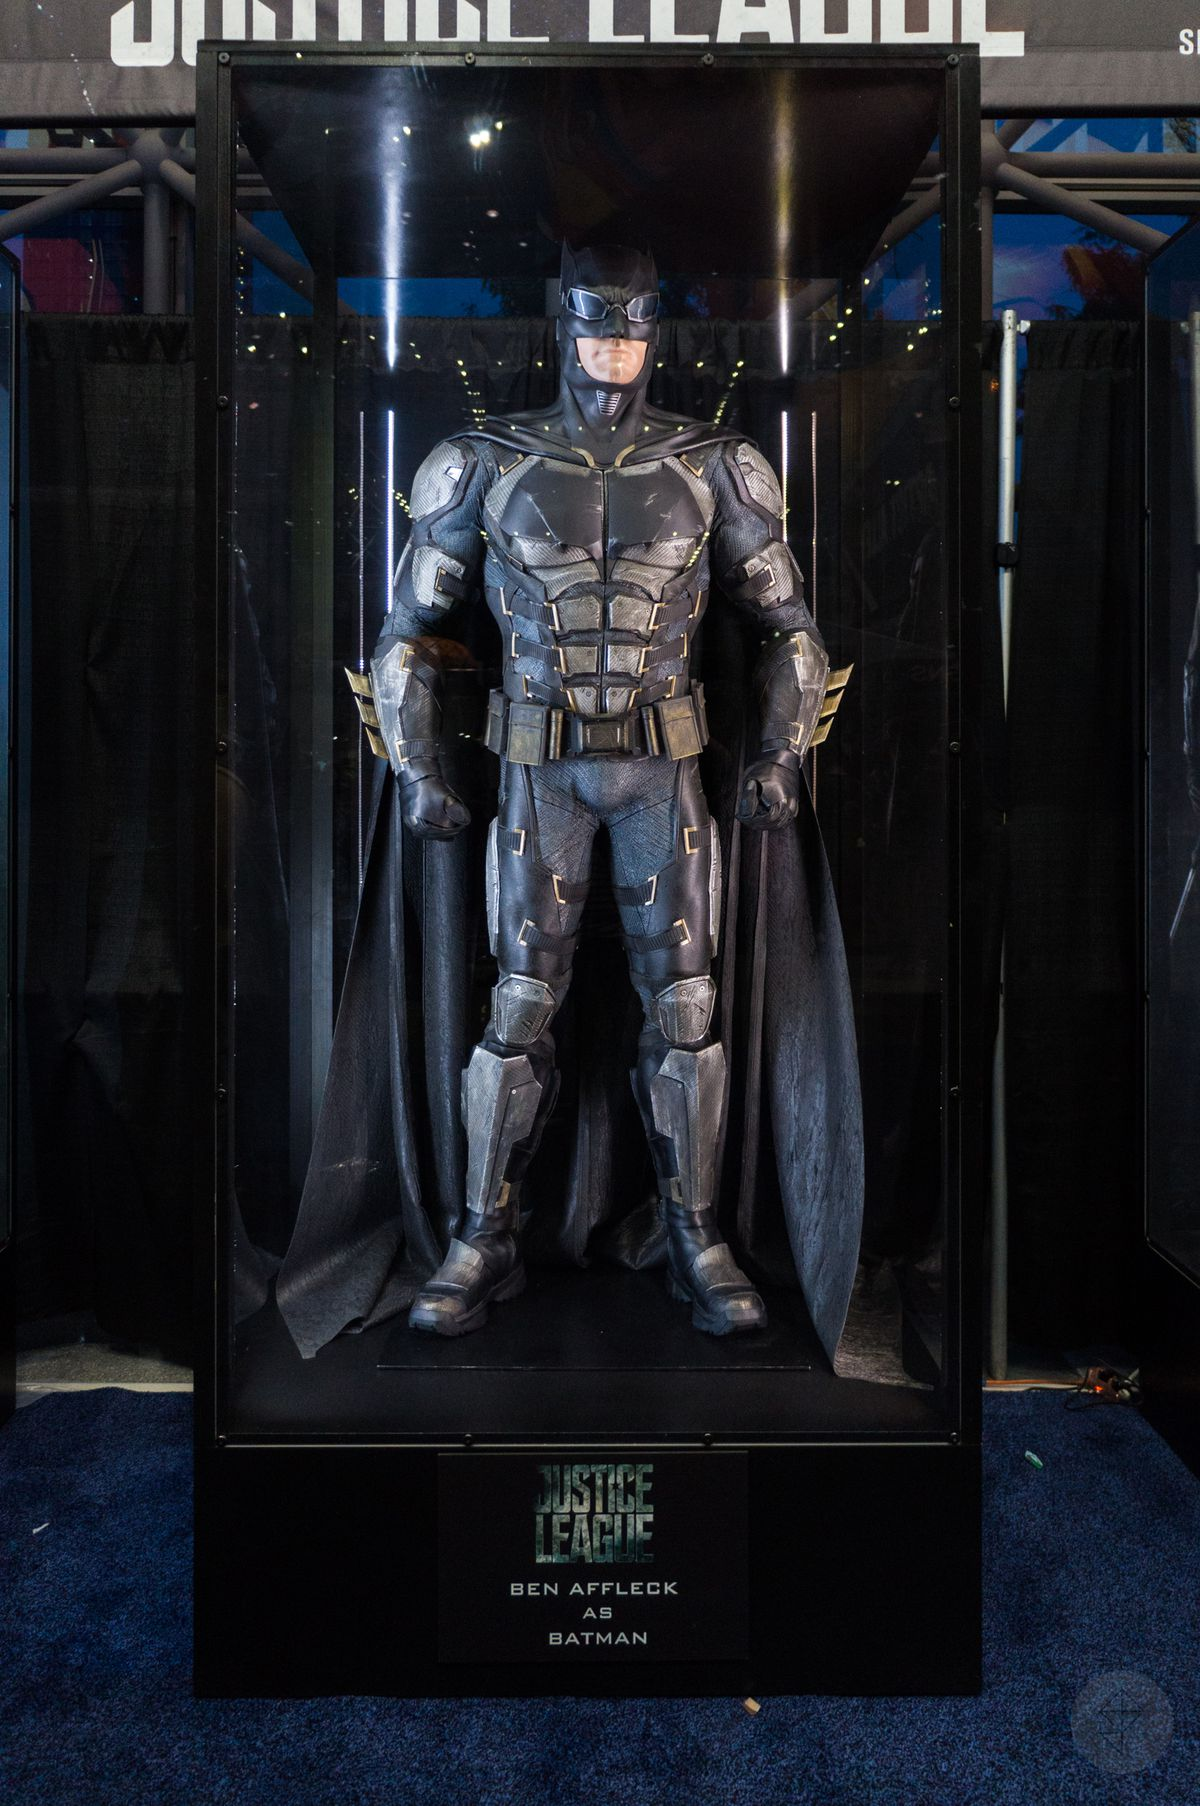 Batman costume from Justice League movie in glass case at NYCC 2017